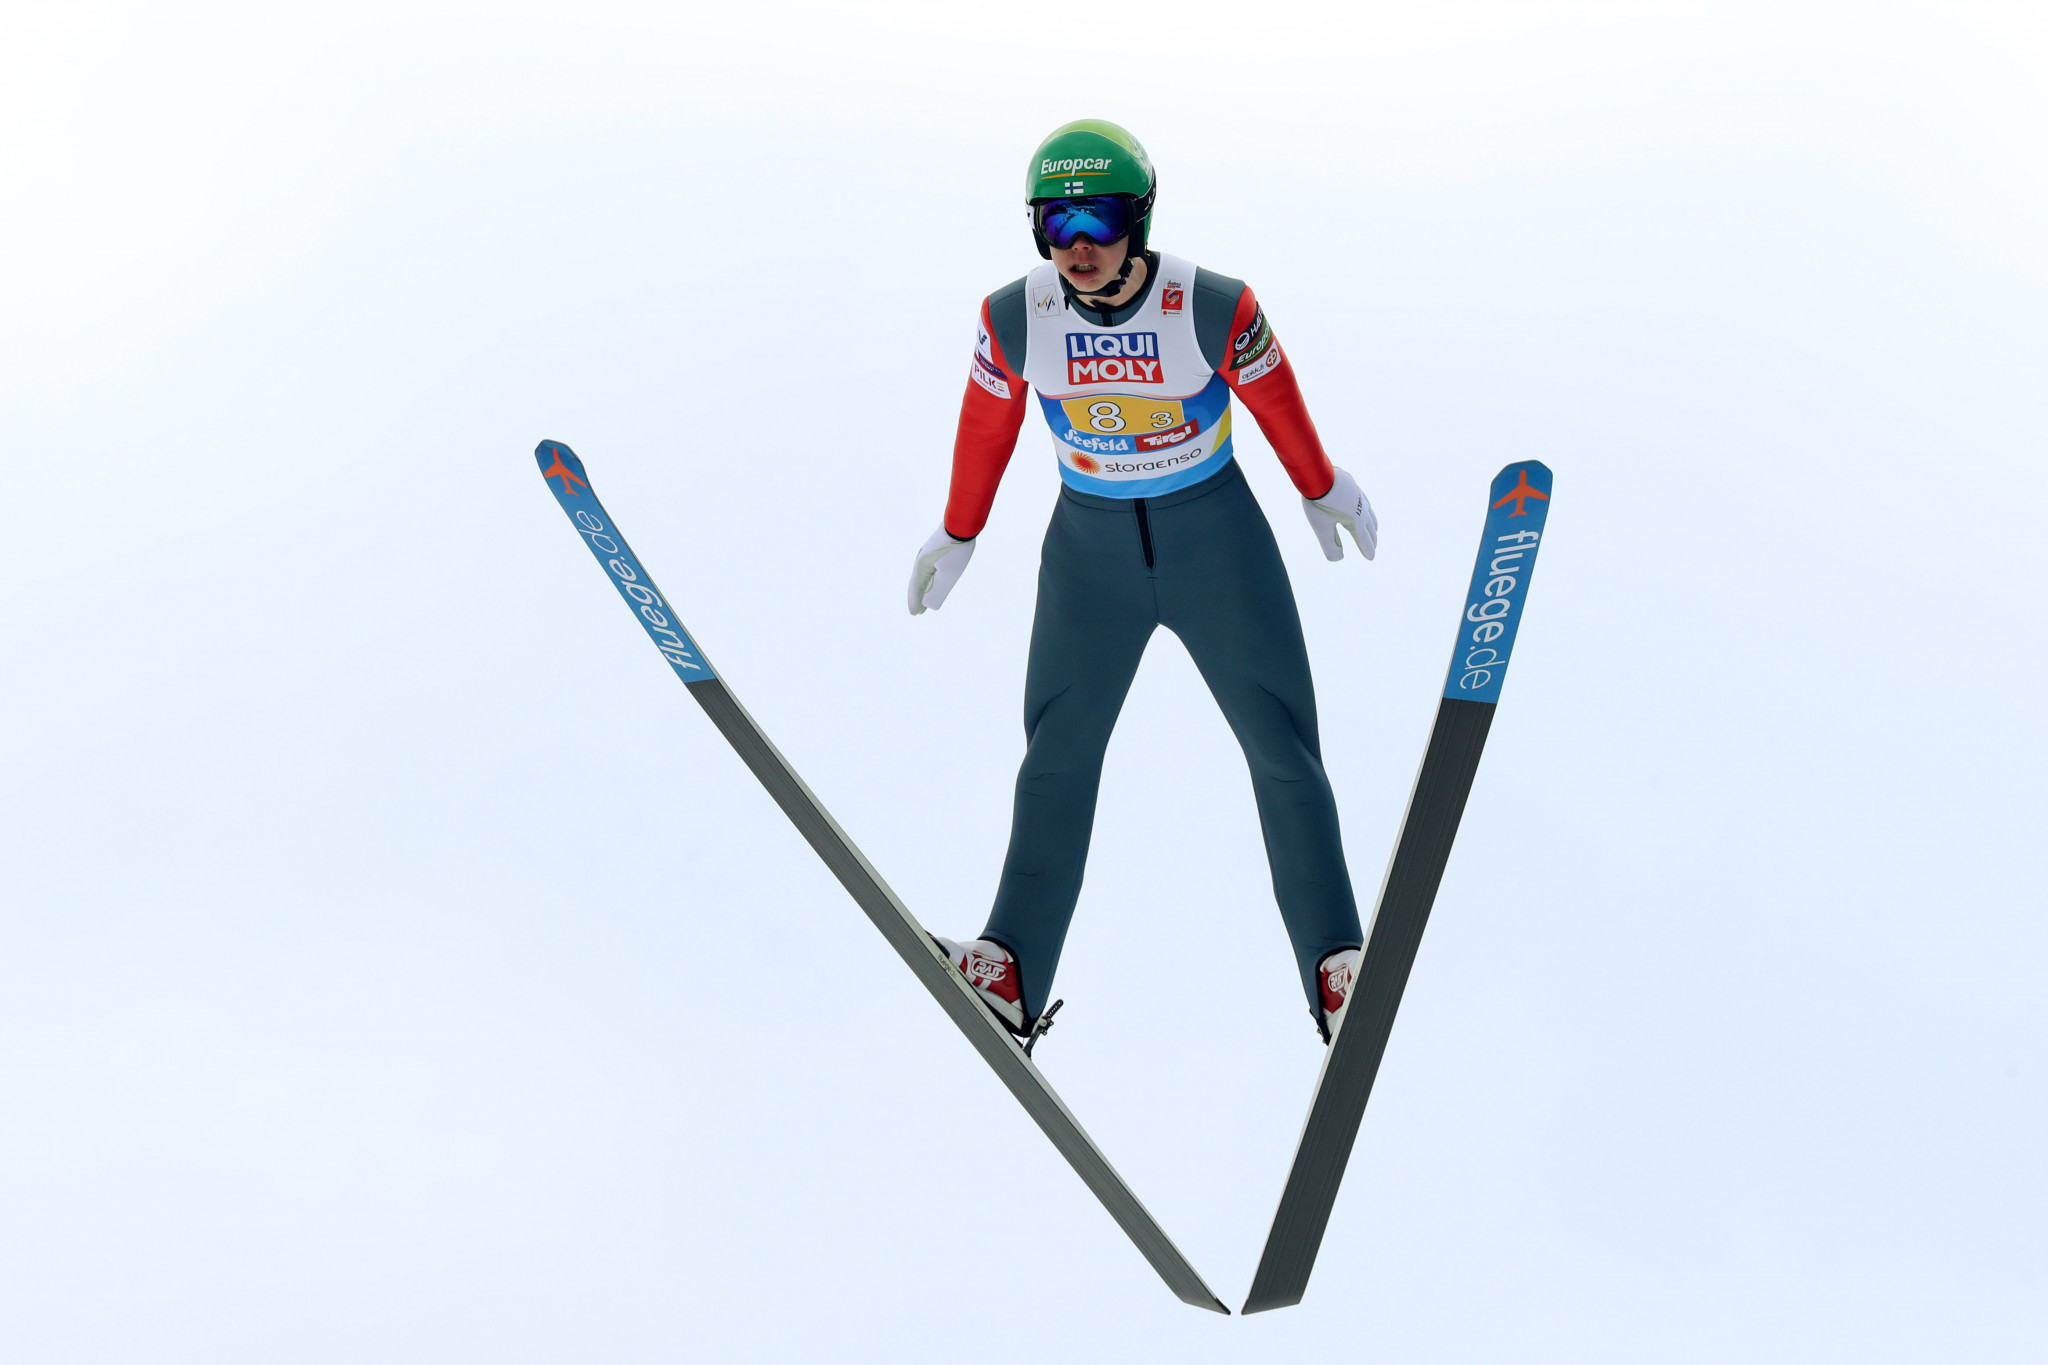 Former junior world champion shows support for development of women's Nordic combined